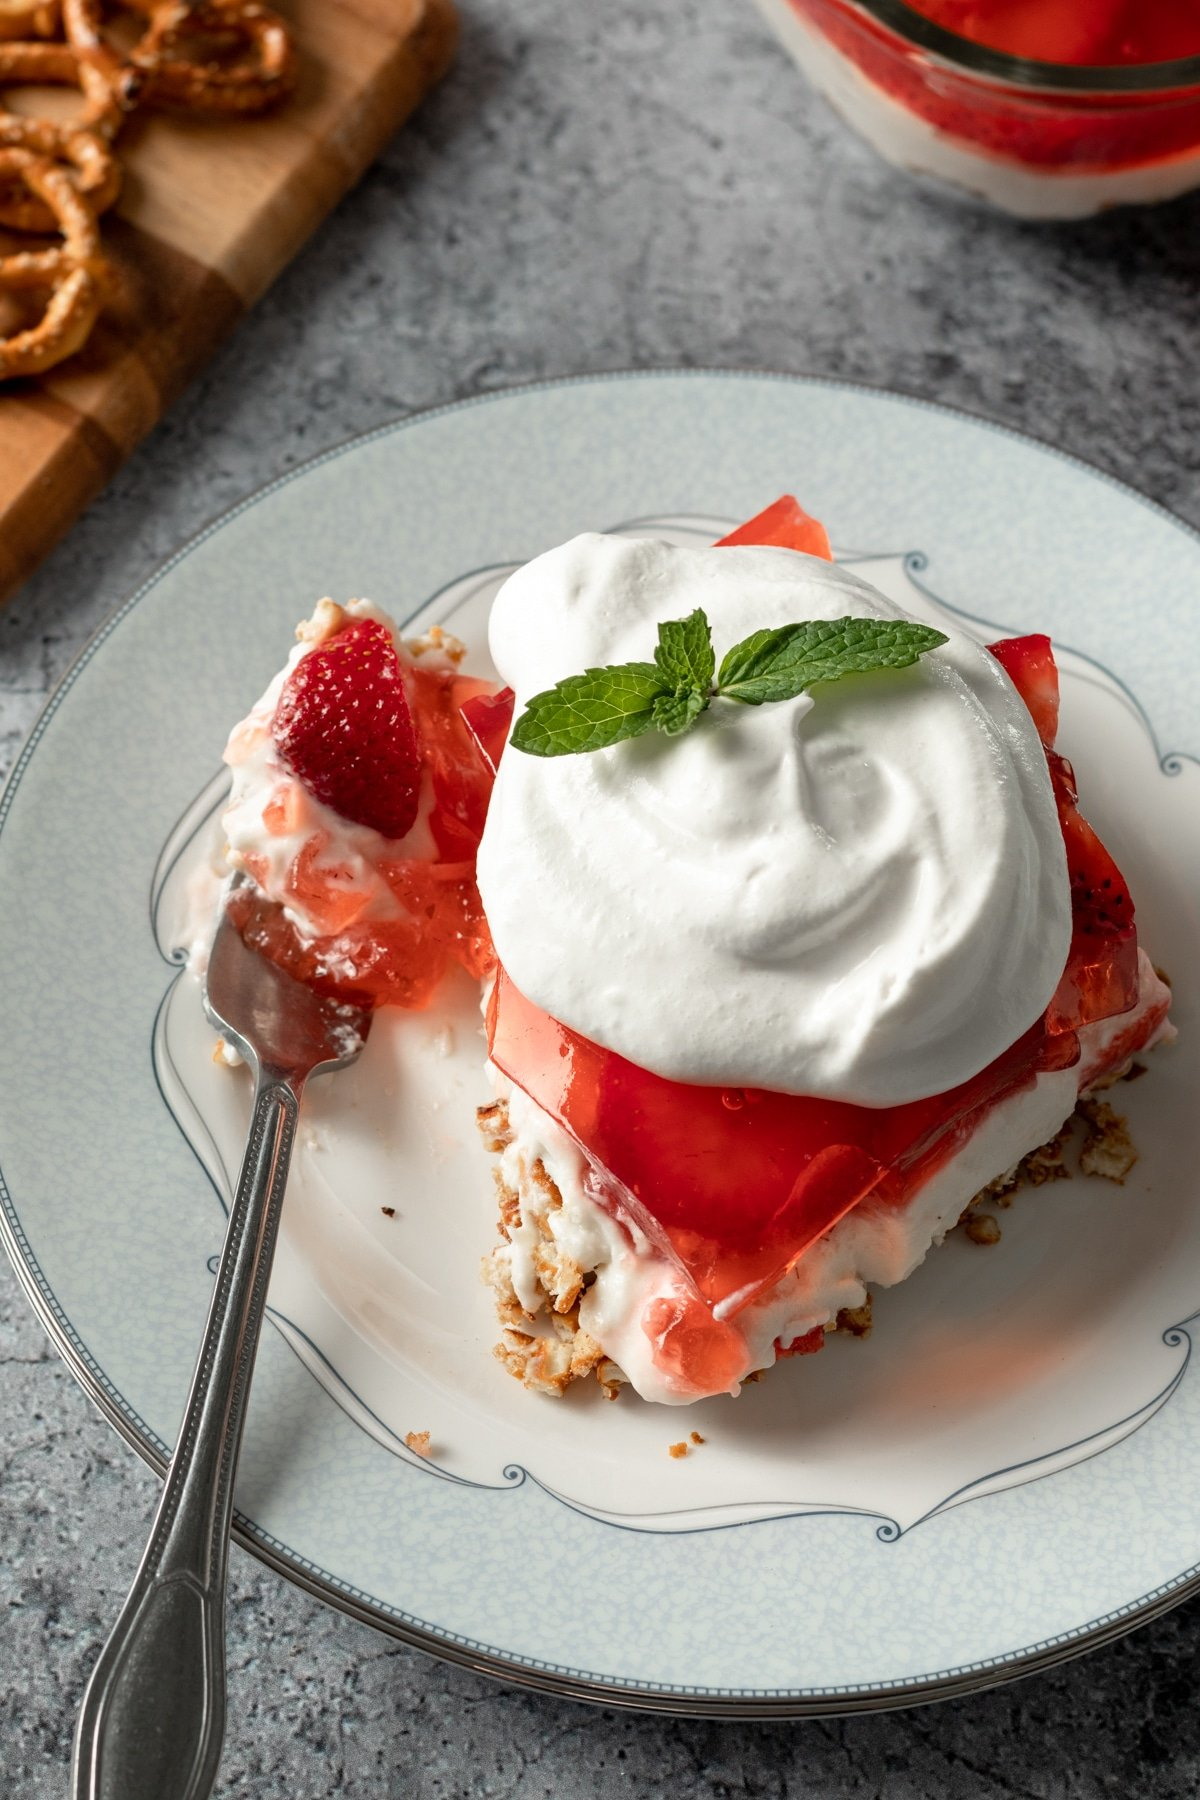 a serving of vegan strawberry pretzel salad on a plate